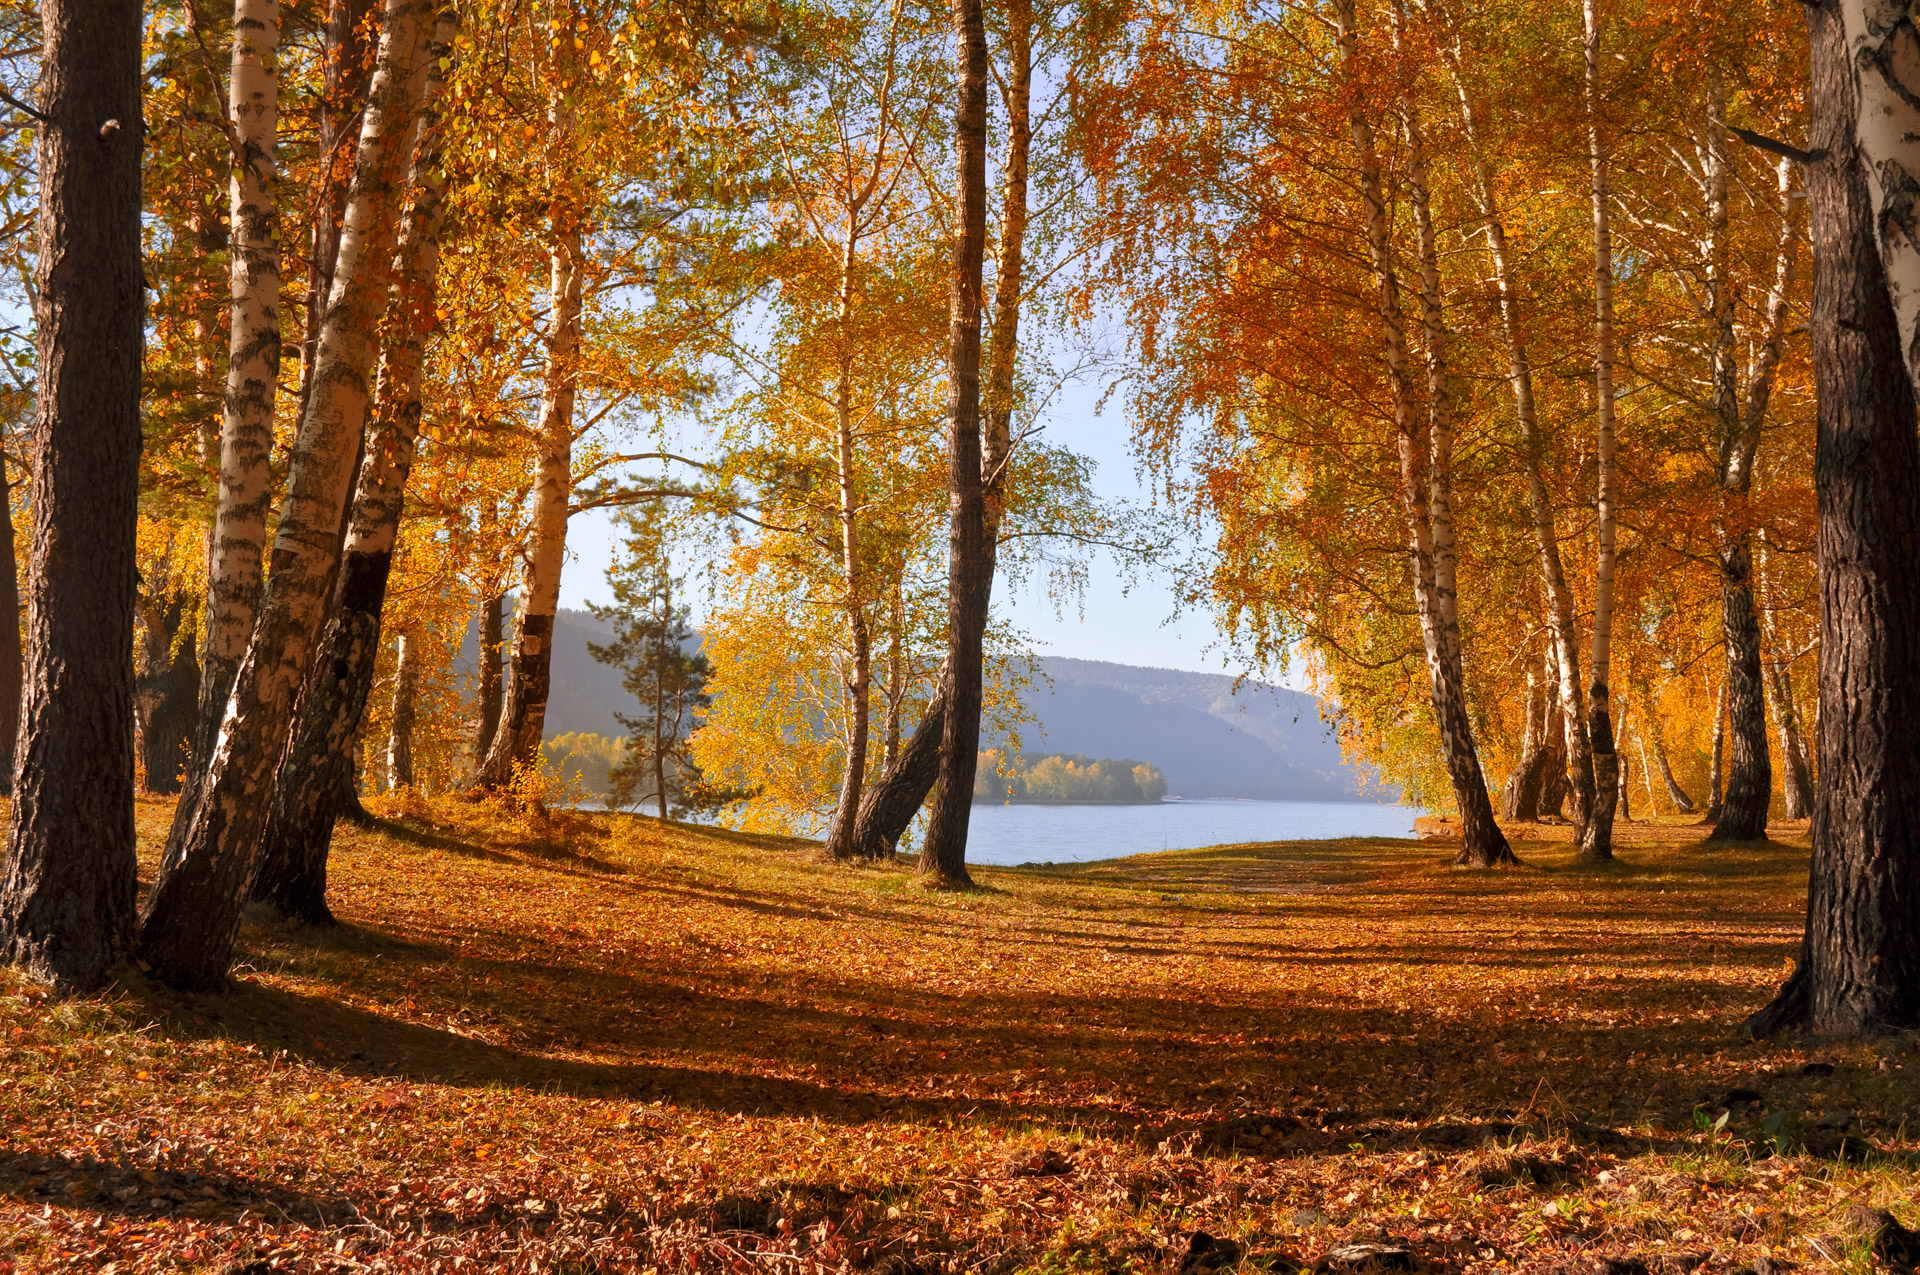 Autumn Forest Free Stock Photo - Public Domain Pictures